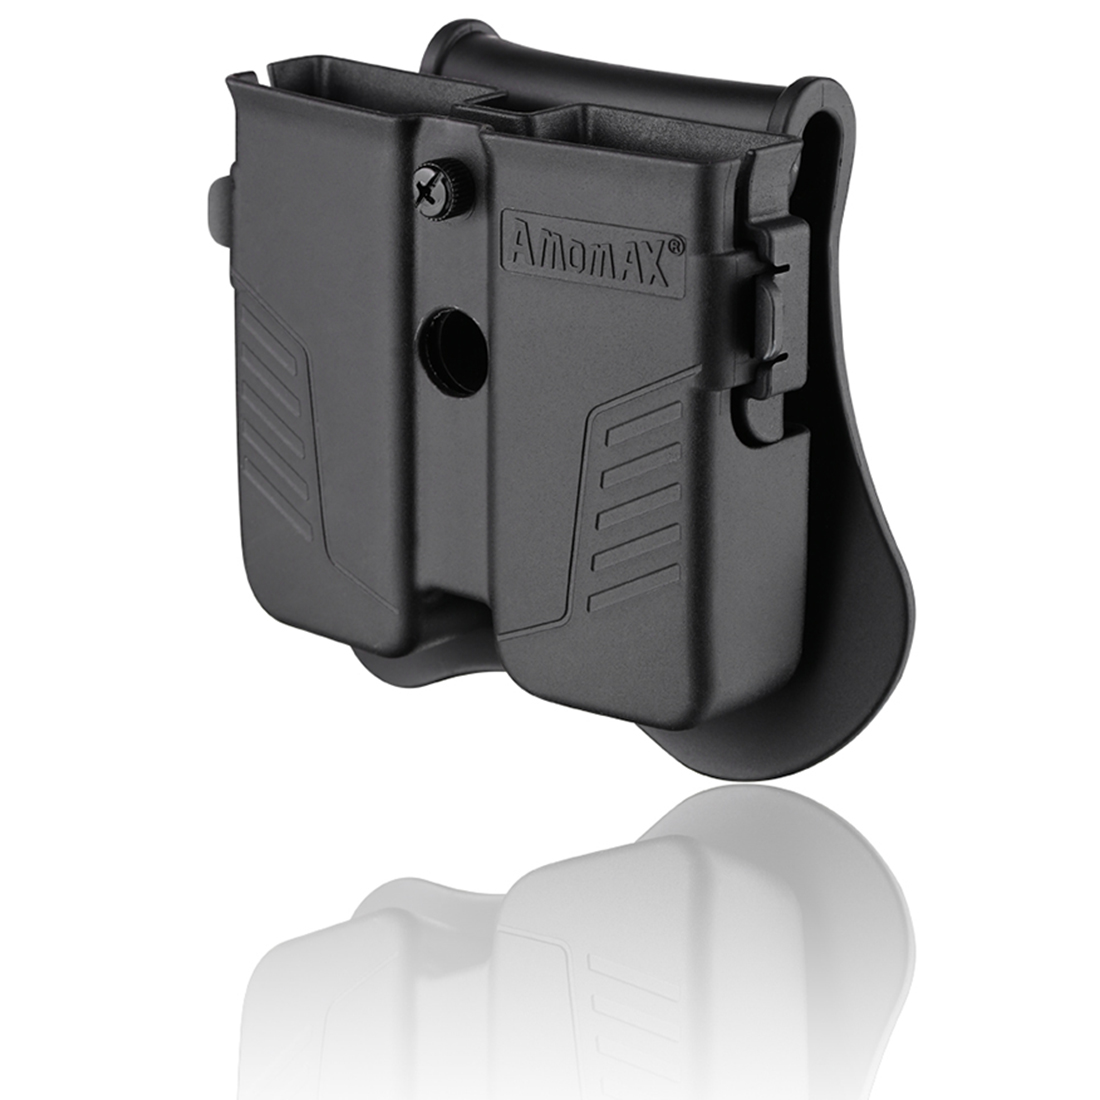 Amomax Double Tactical Hunting Magazine Pouch For Universal 9mm .40 .45 Caliber Single Double Stack Magazines - Black